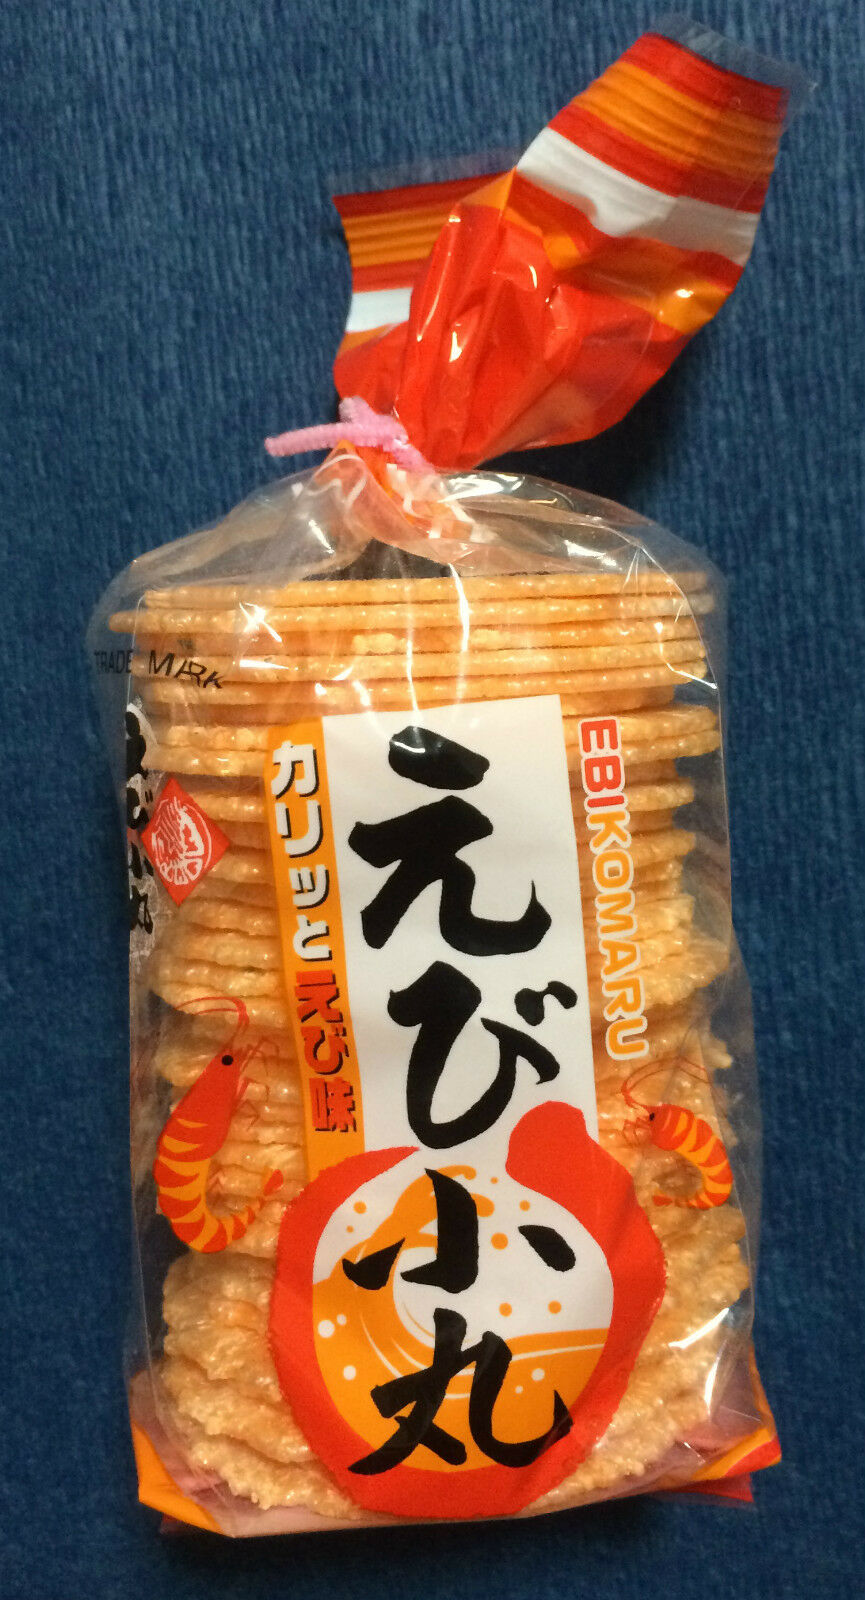 1 x Bag of Prawn Crackers - Ebi Komaru - Japanese Snacks / Chips